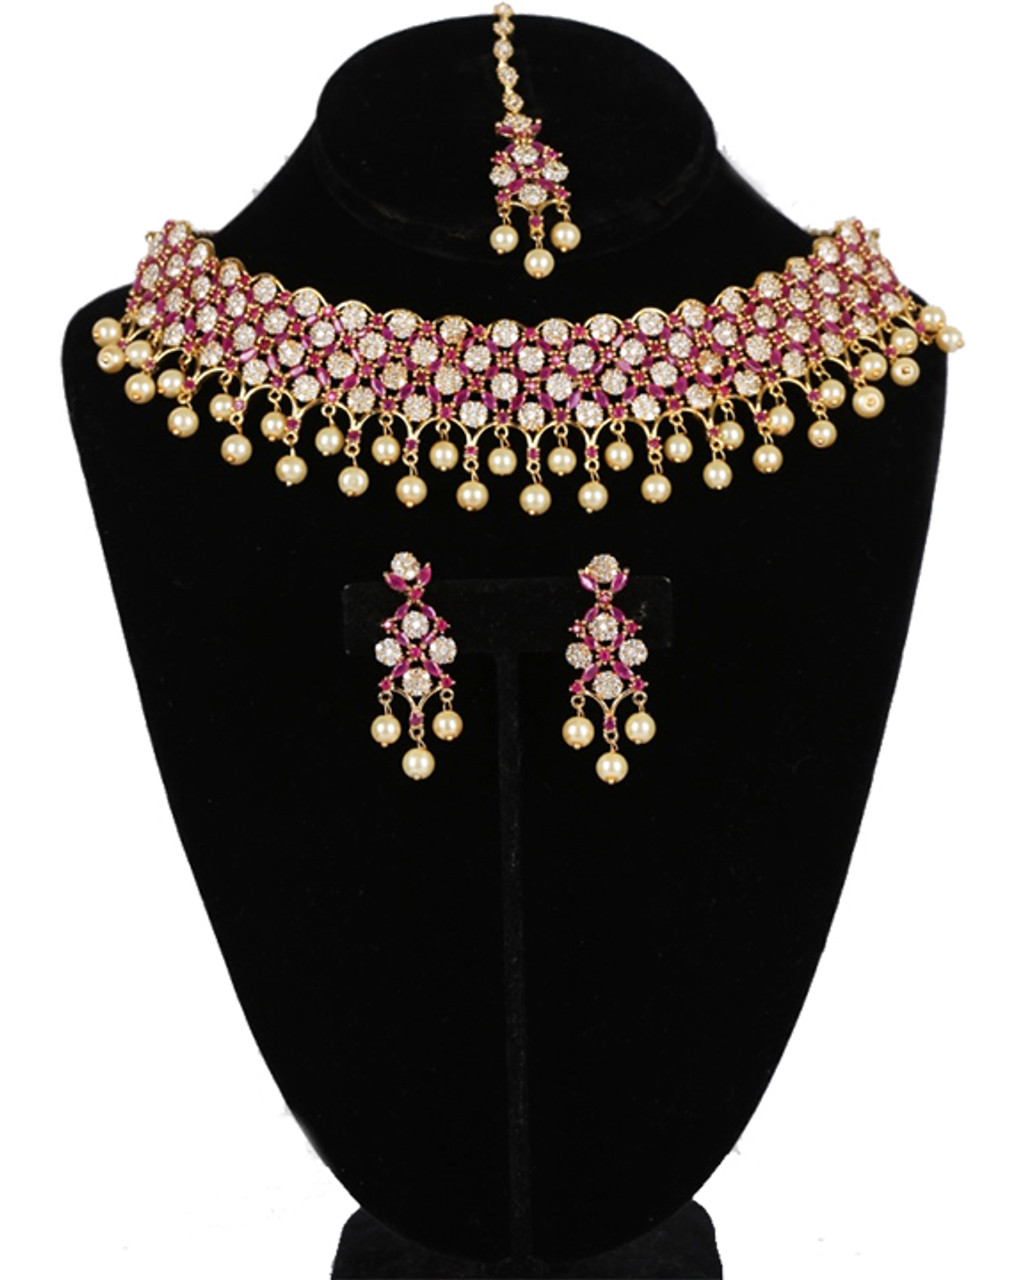 American Diamond Necklace Set Synthetic Ruby Clear Stones And Faux Pearls With Matching Tikka Bridal Jewelry